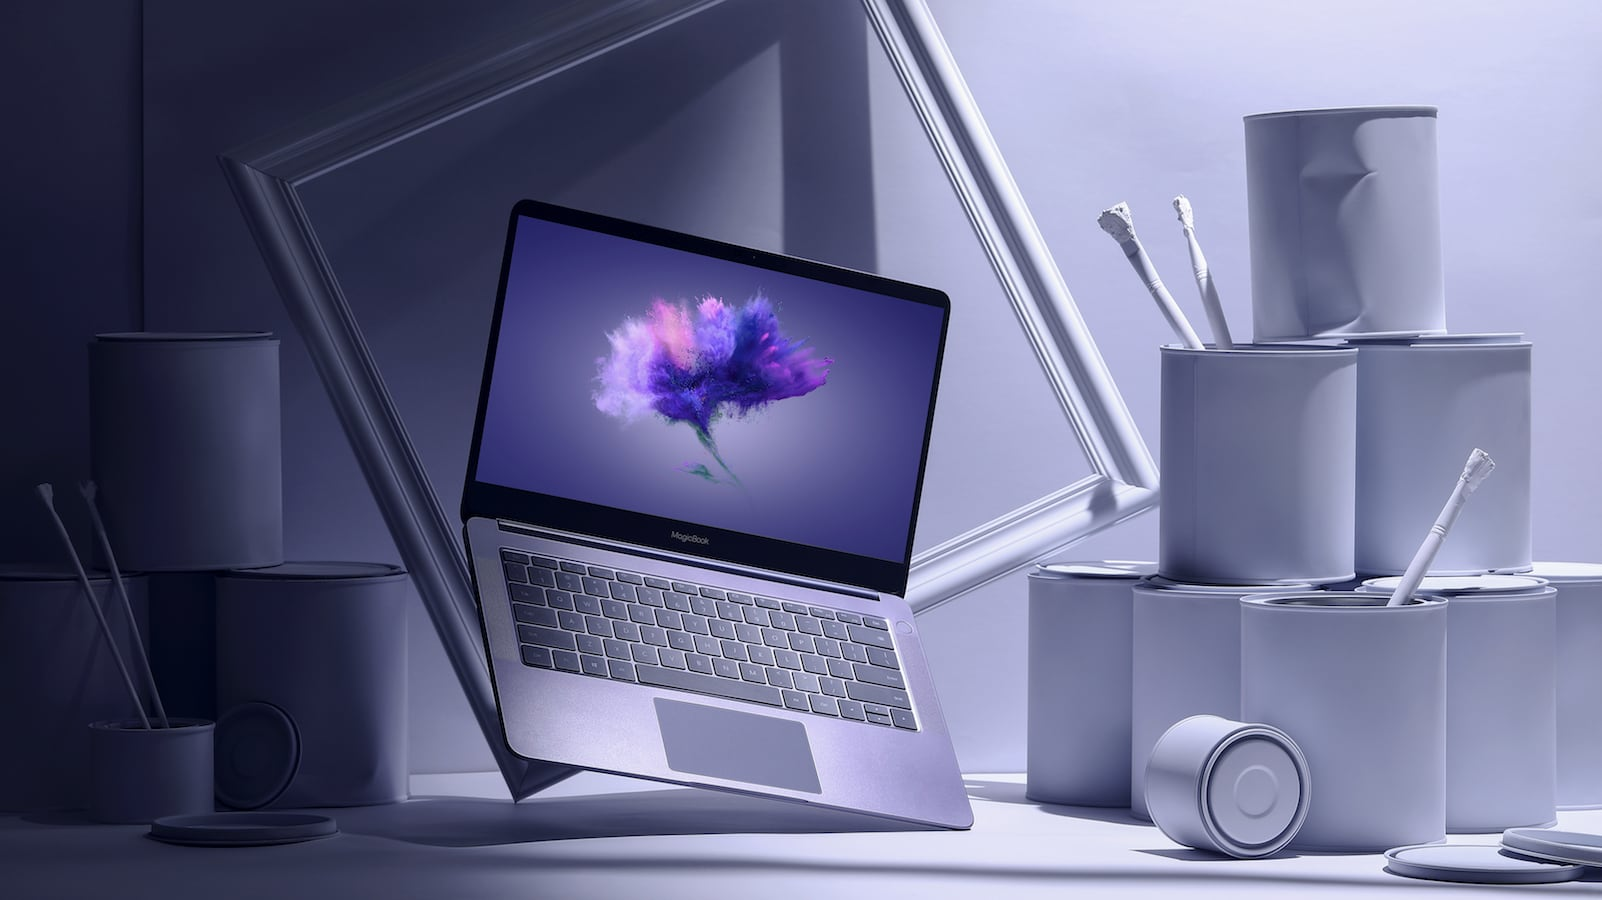 HONOR MagicBook-AMD laptop has a Dolby Atmos sound system